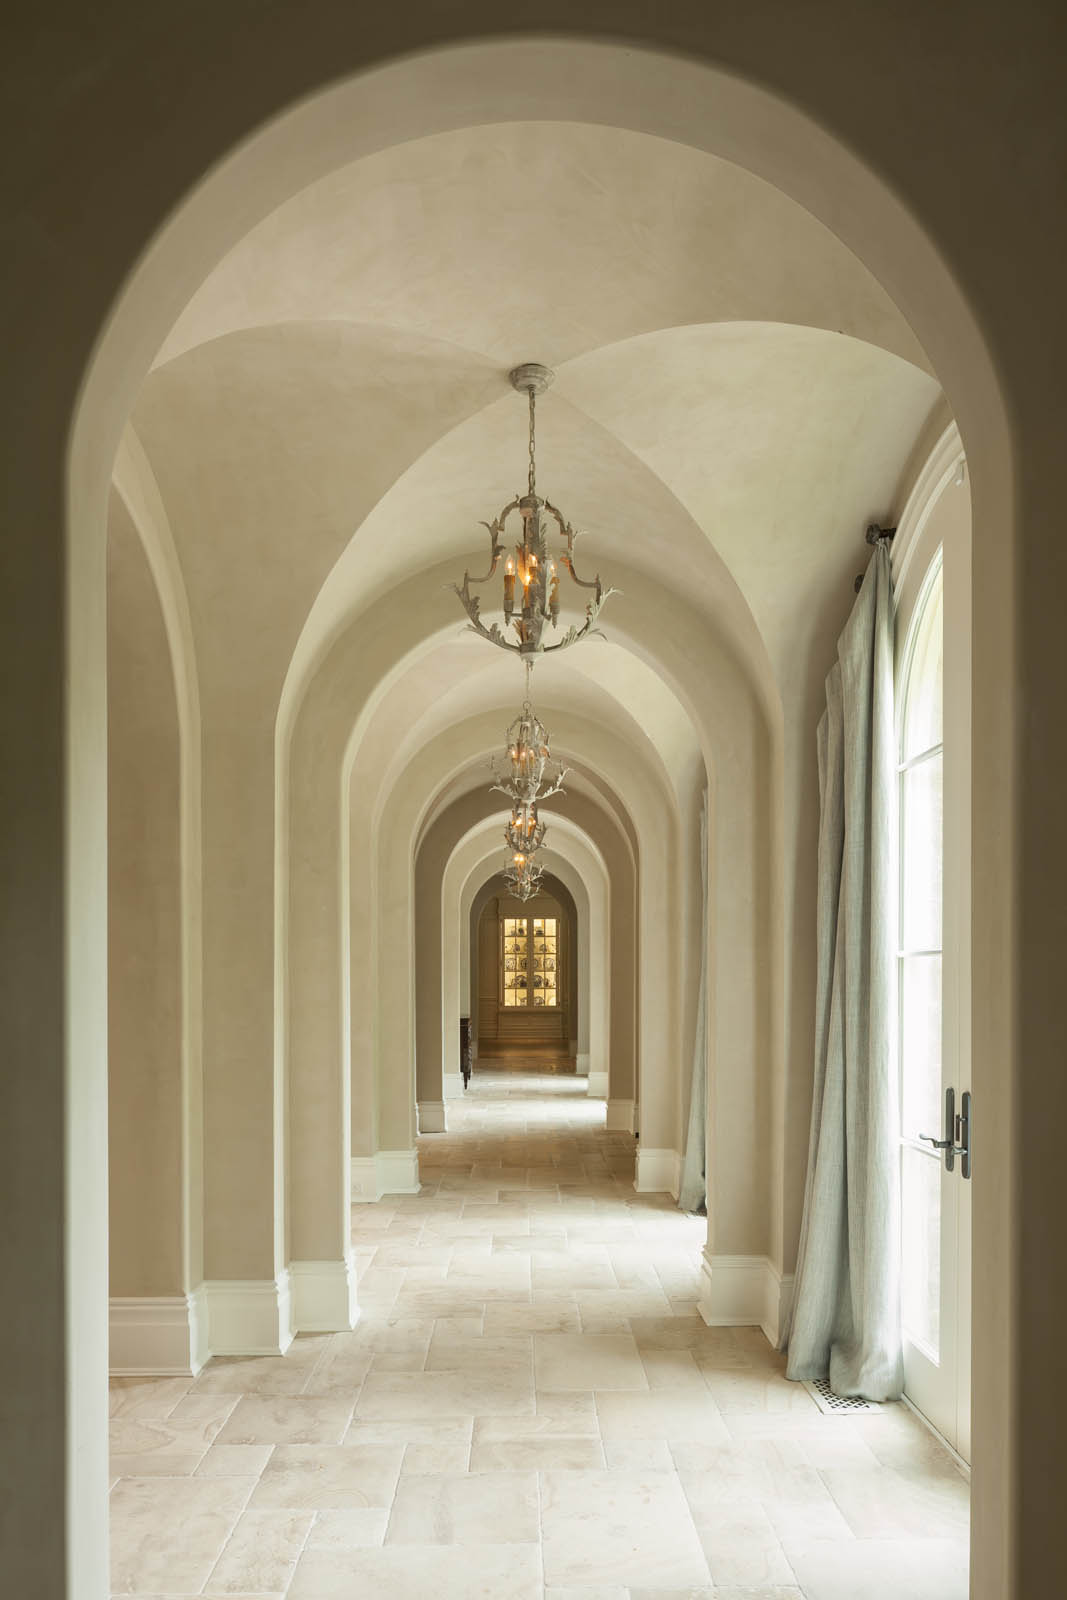 Interior architecture by Harrison Design includes cross groin vault entry hall with stone floor and arched glass doors